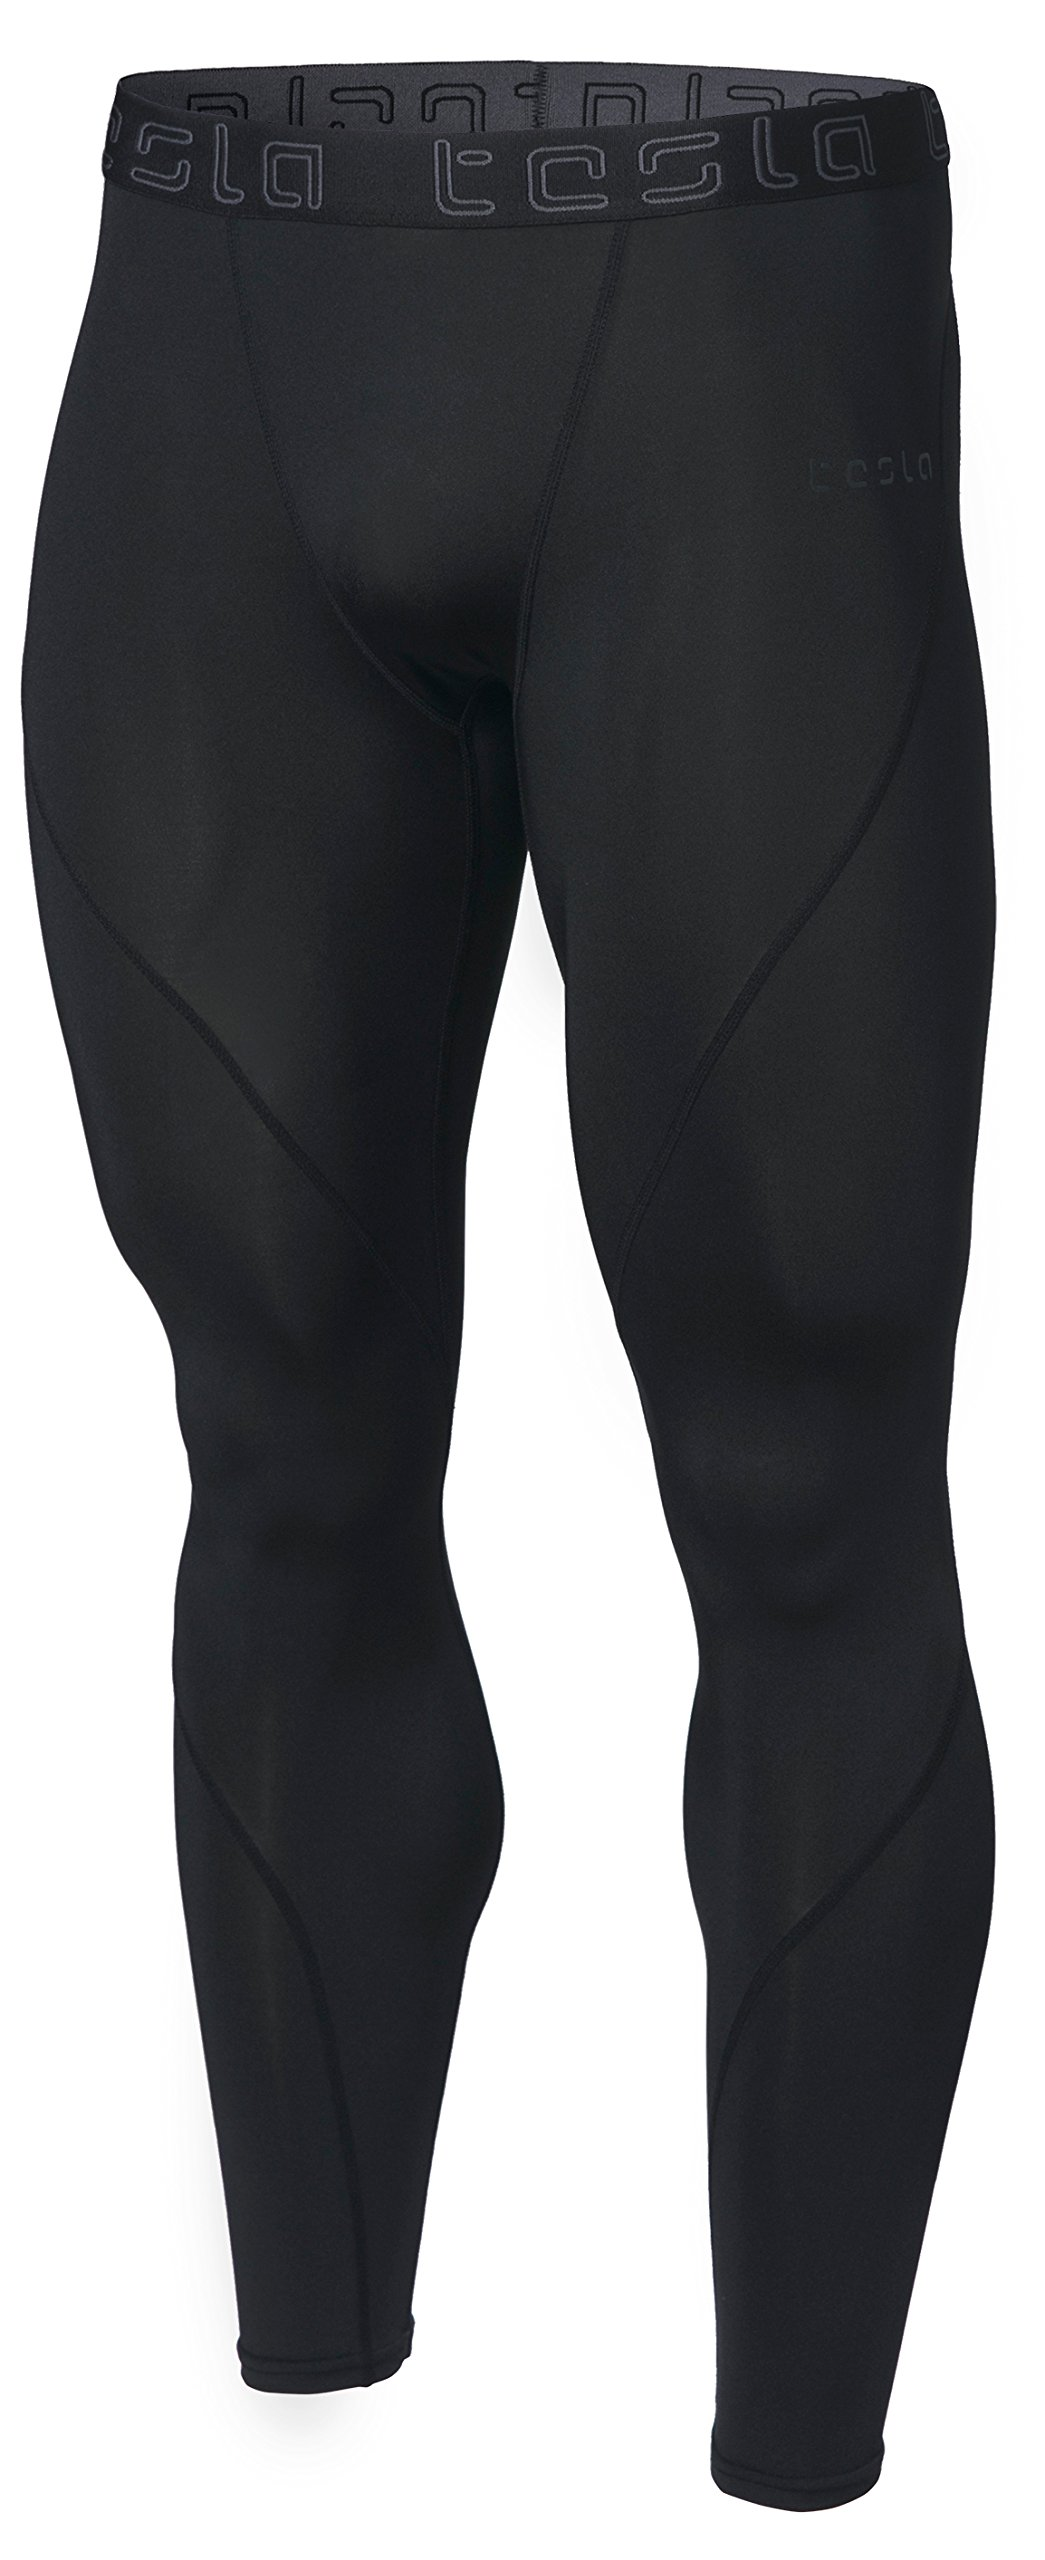 TSLA Men's Compression Pants Running Baselayer Cool Dry Sports Tights, Athletic(mup19) - Black, 2X-Large by TSLA